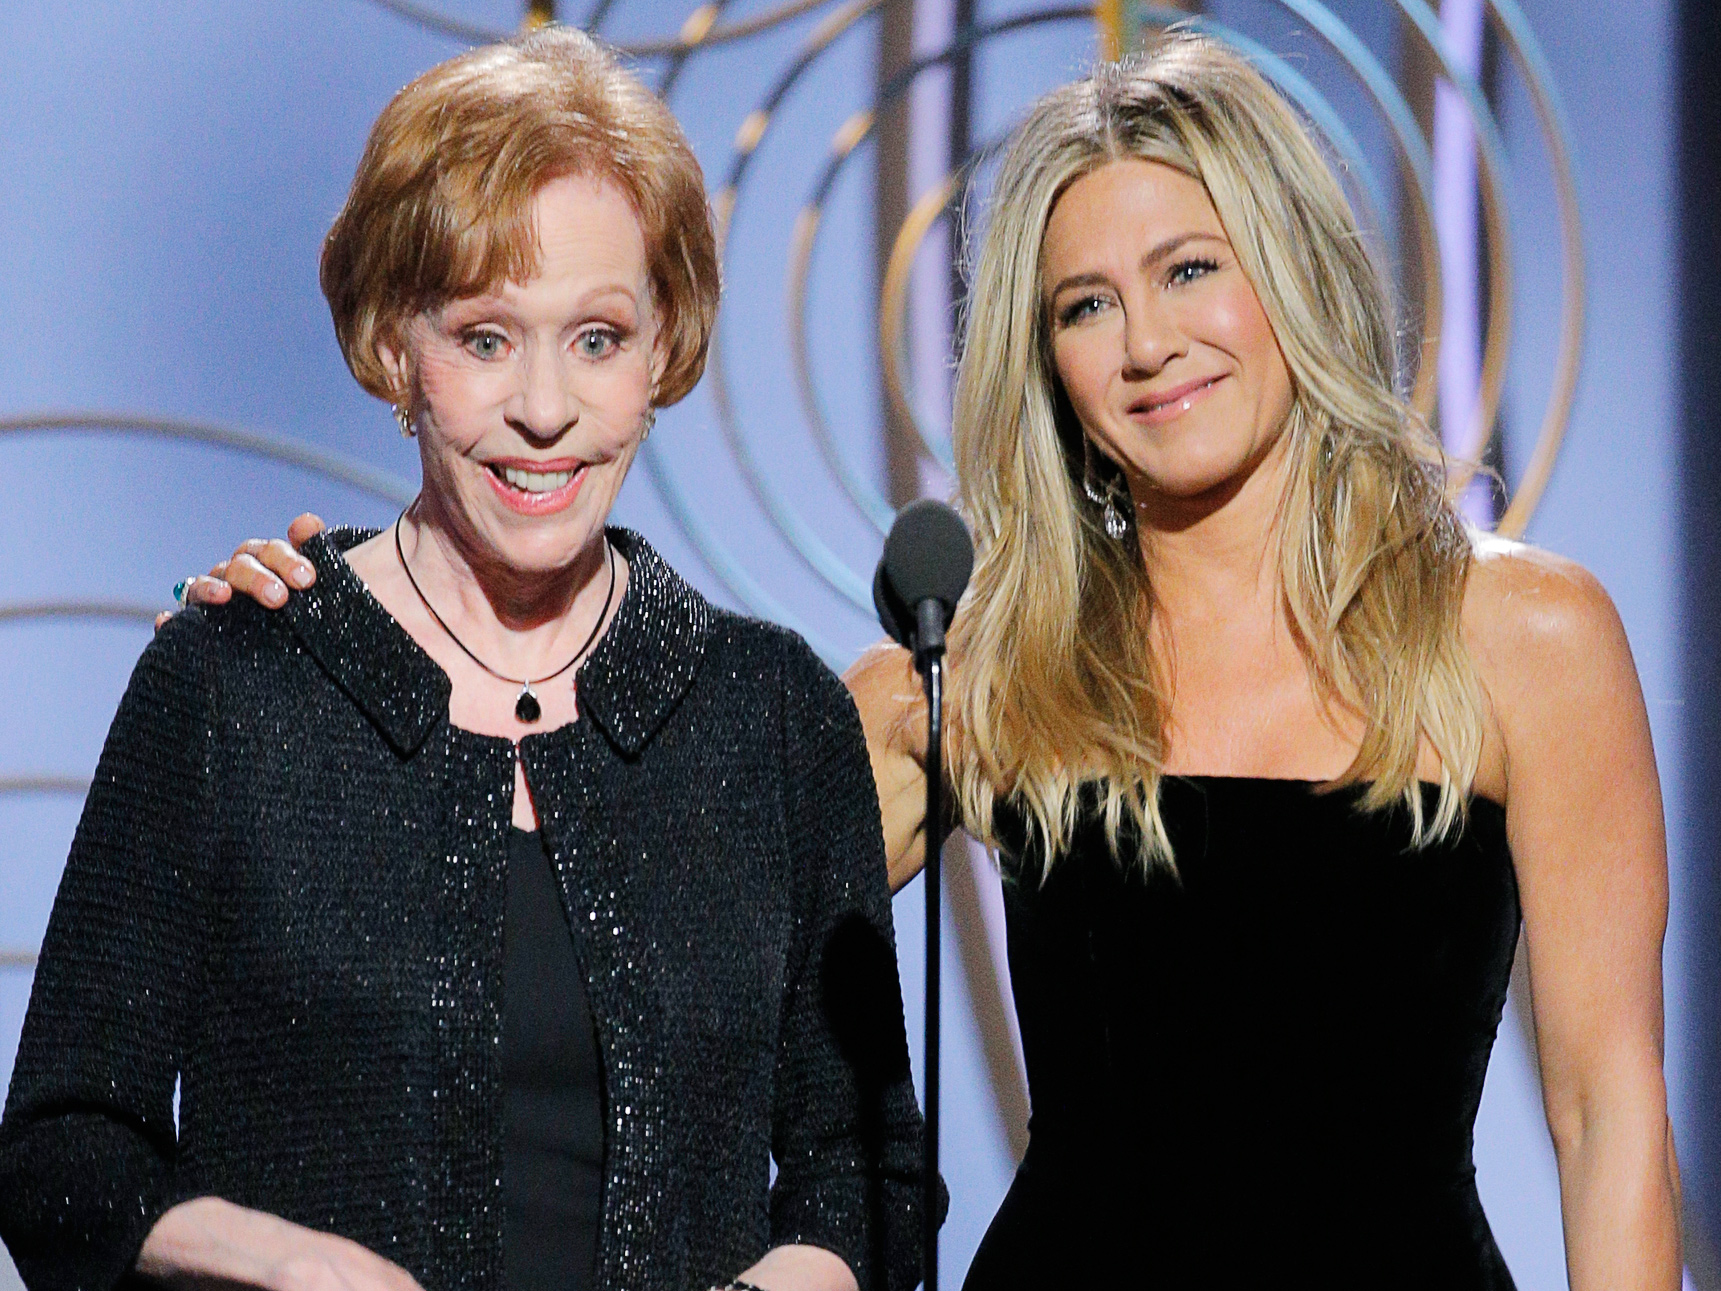 Jennifer Aniston (and Her Phenomenal Hair) Get Hilariously Trolled by Carol Burnett at the Golden Globes